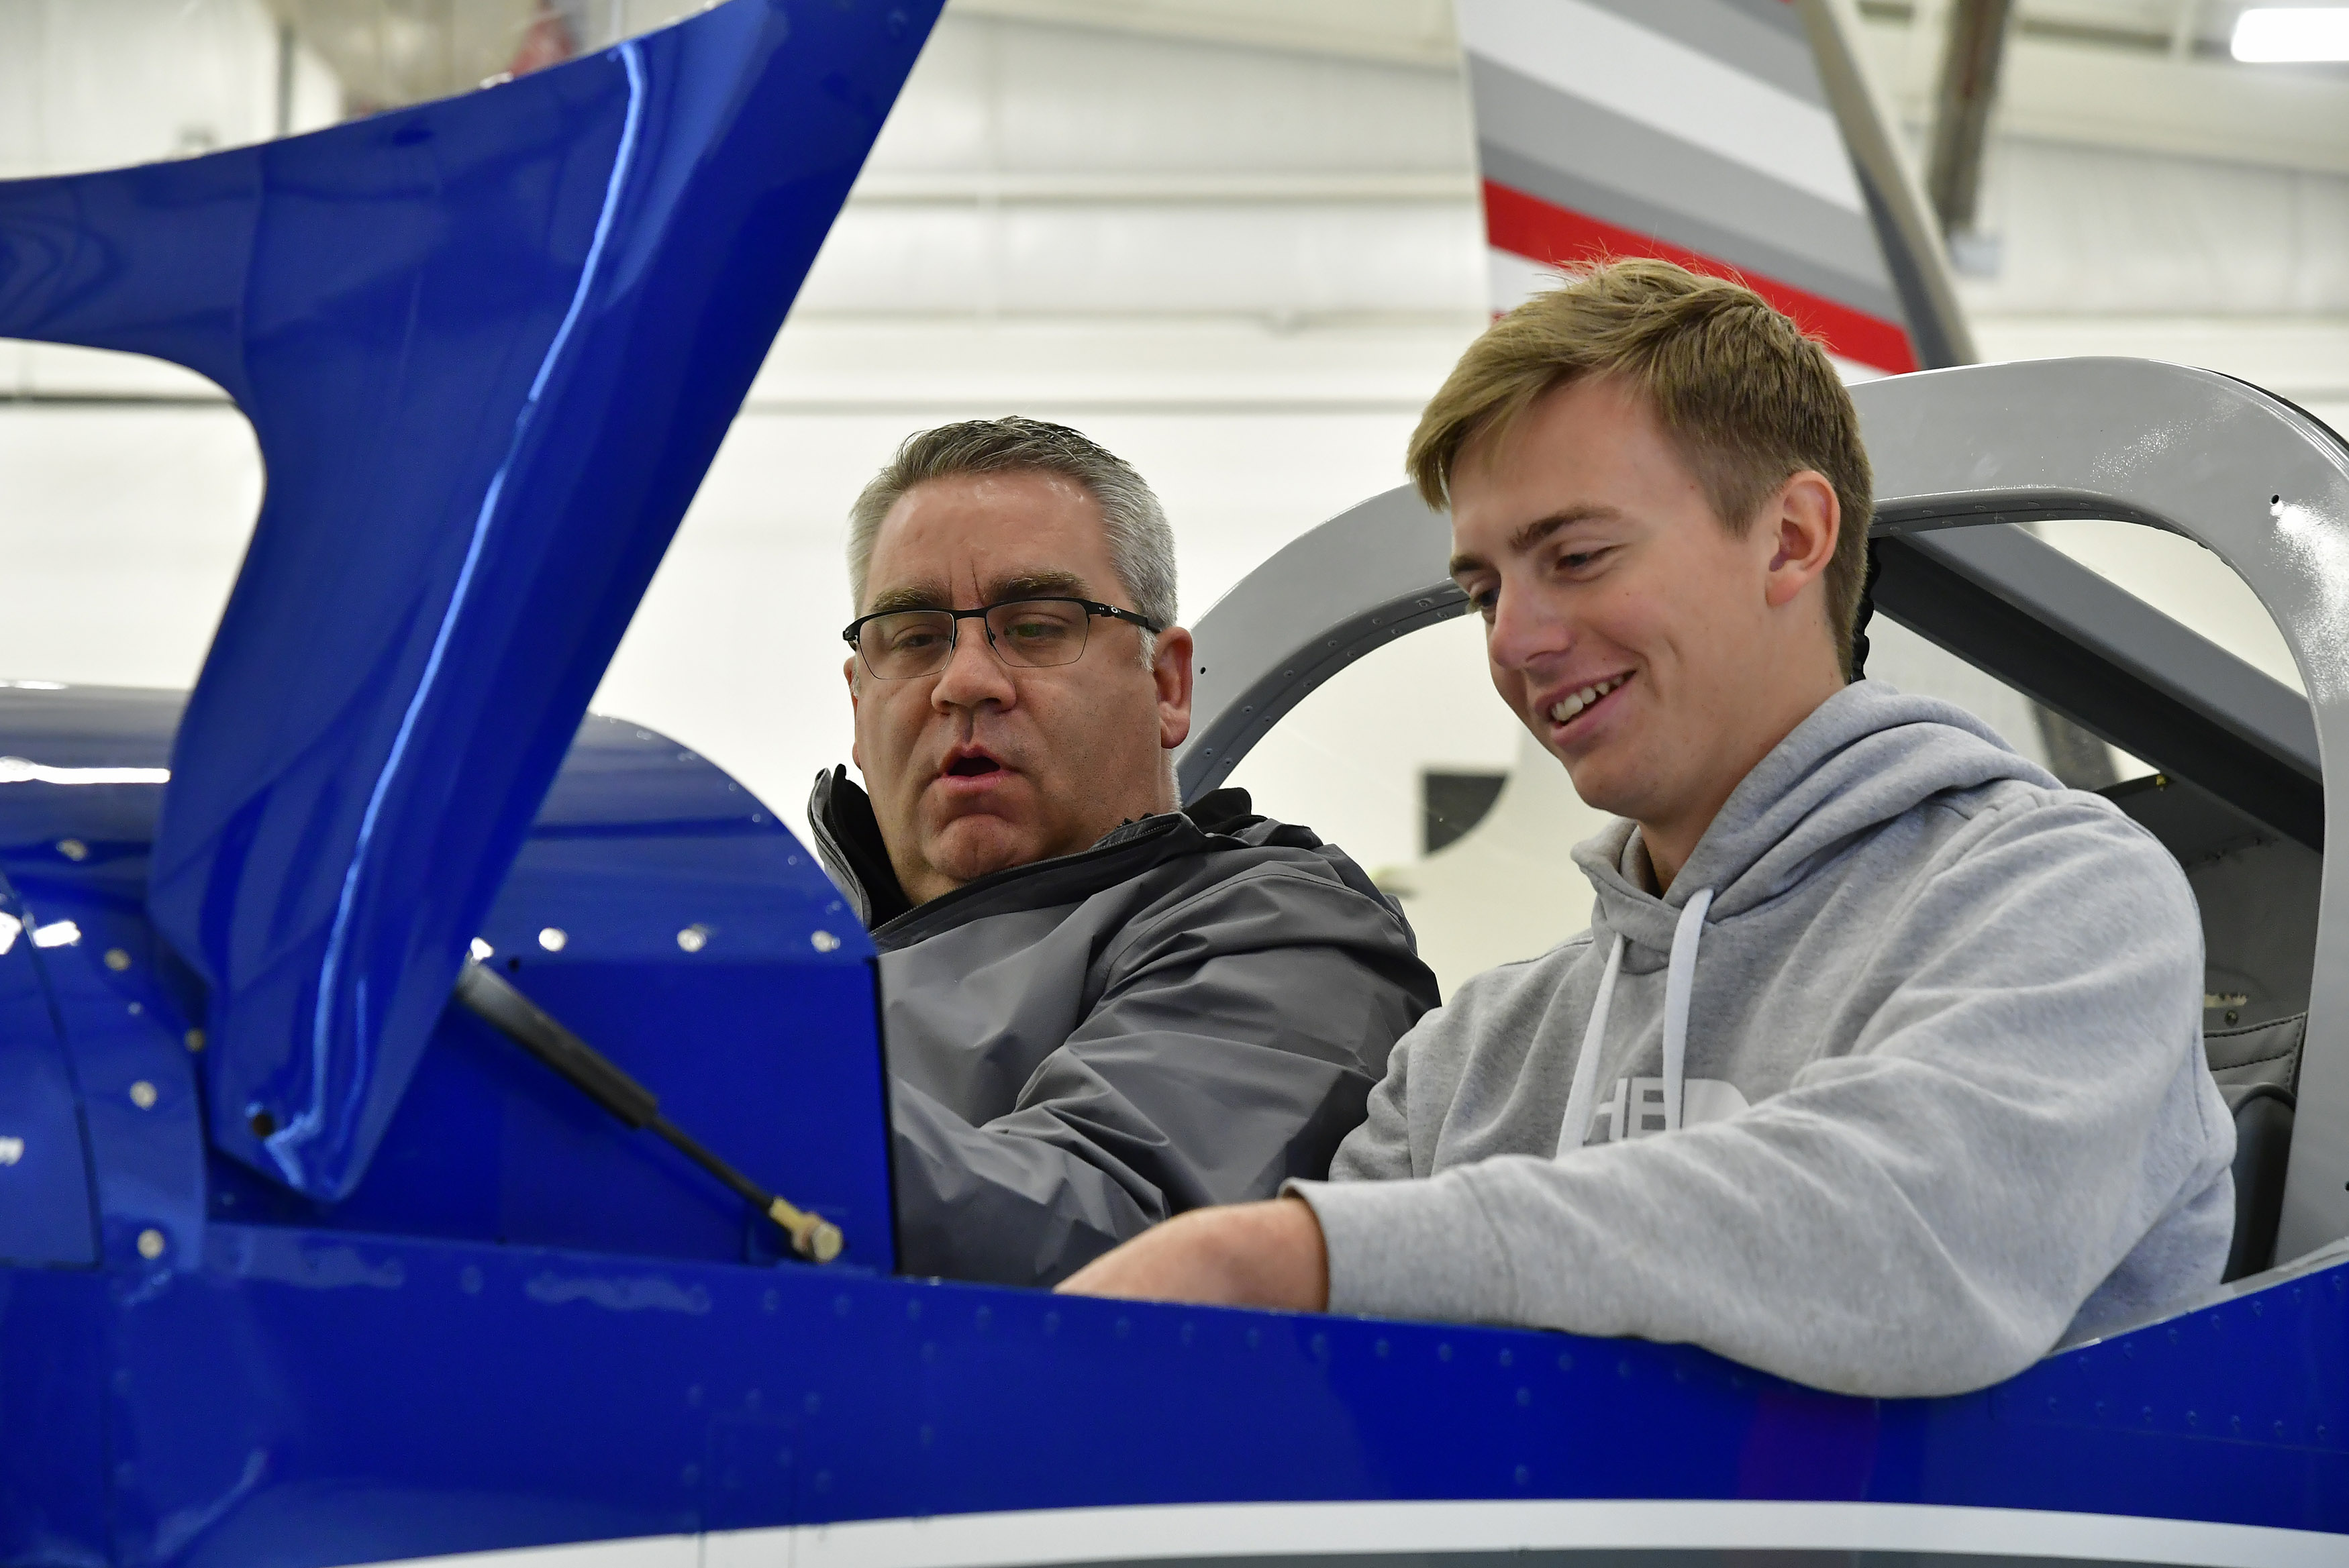 Phillip Campbell familiarizes a Van's Aircraft RV-12 cockpit with McKinney High School student Bryan Soltys-Niemann during an aviation class at McKinney National Airport in McKinney, Texas, Nov. 8. Photo by David Tulis.